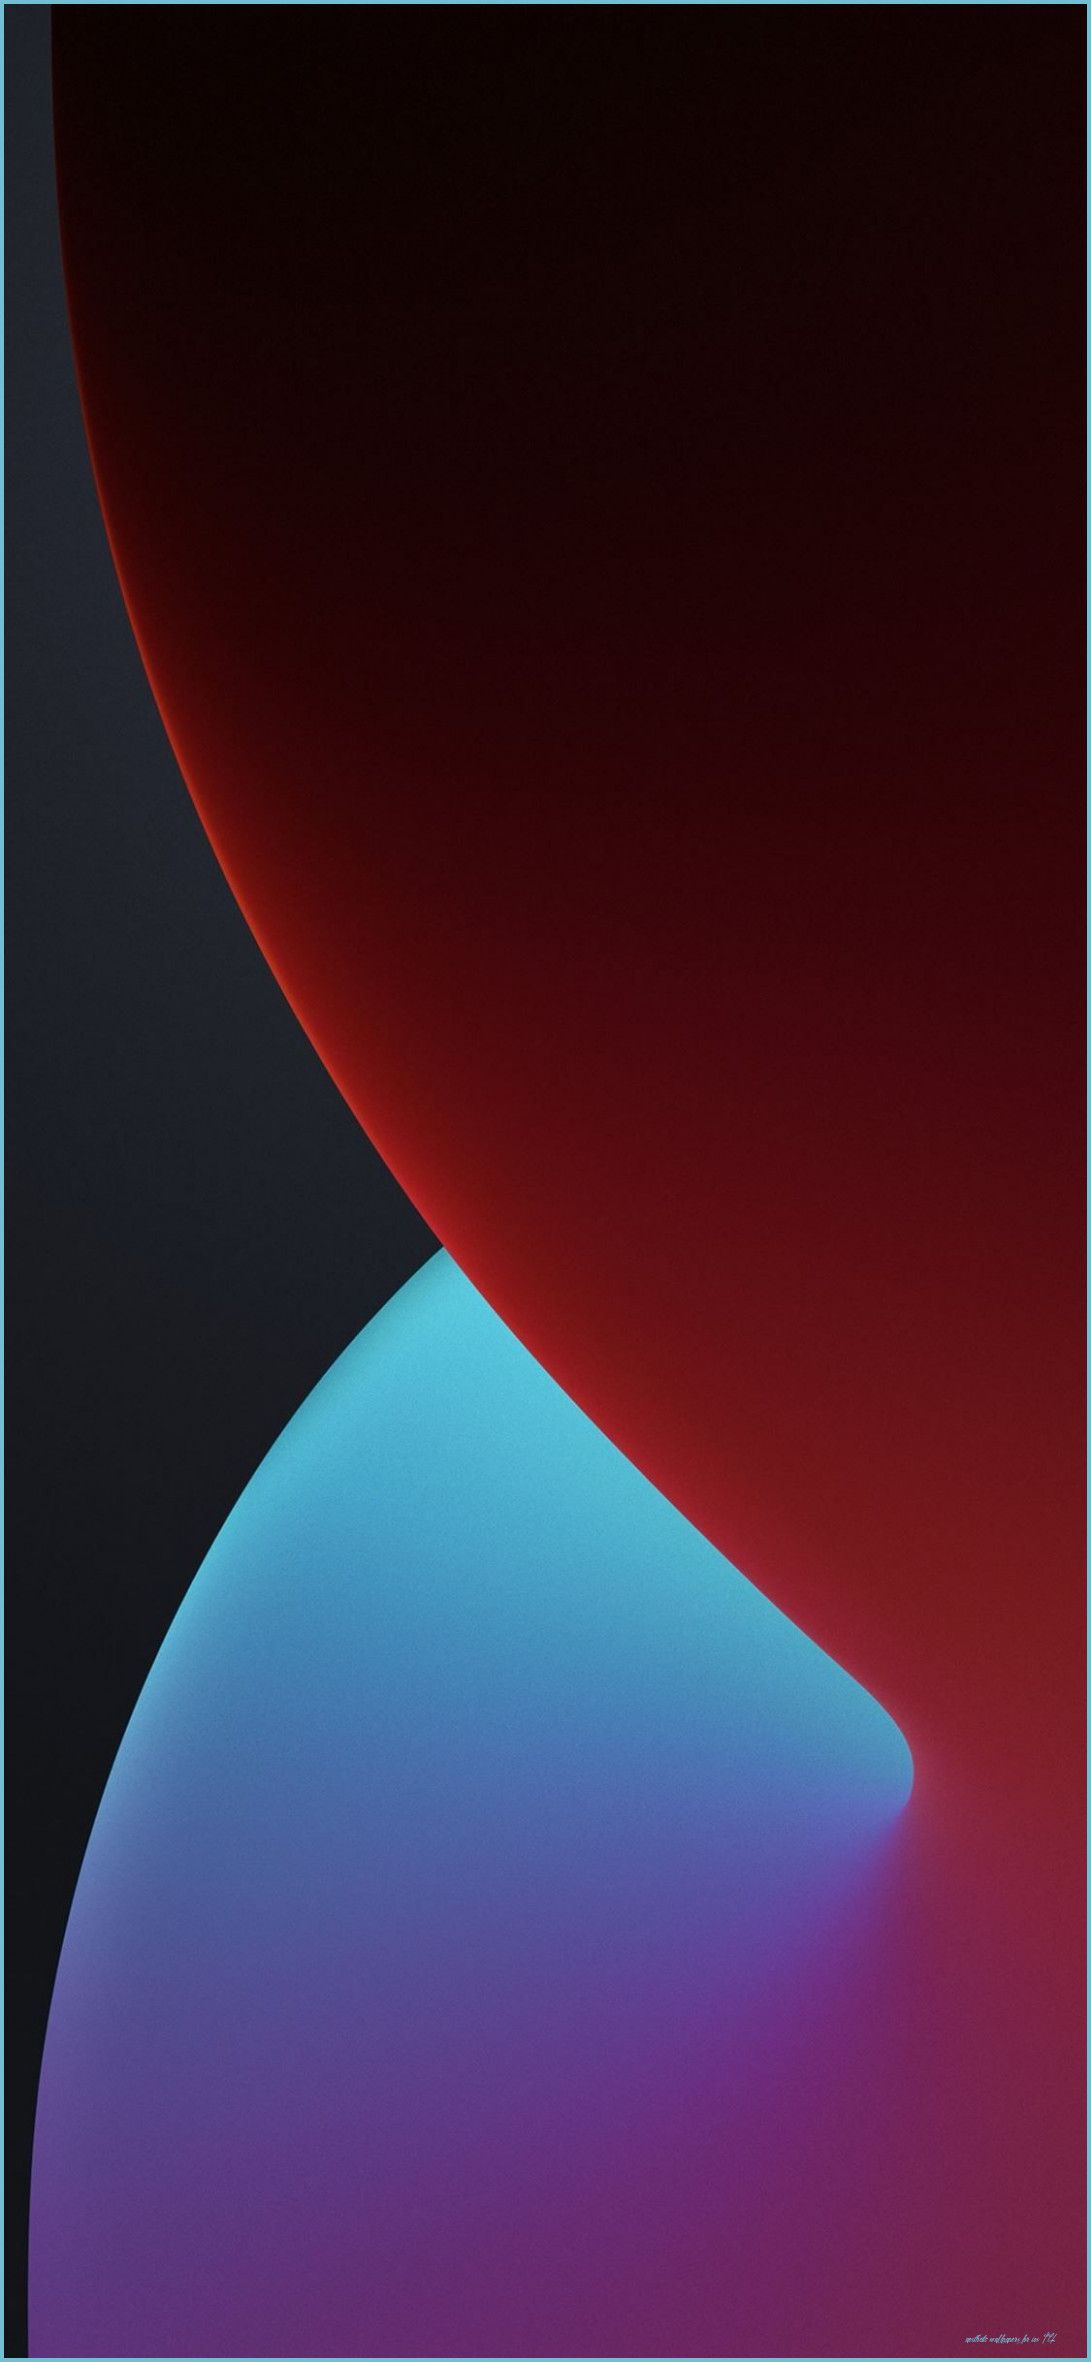 Free download the iOS 12 stock wallpapers Warm Dark wallpapers